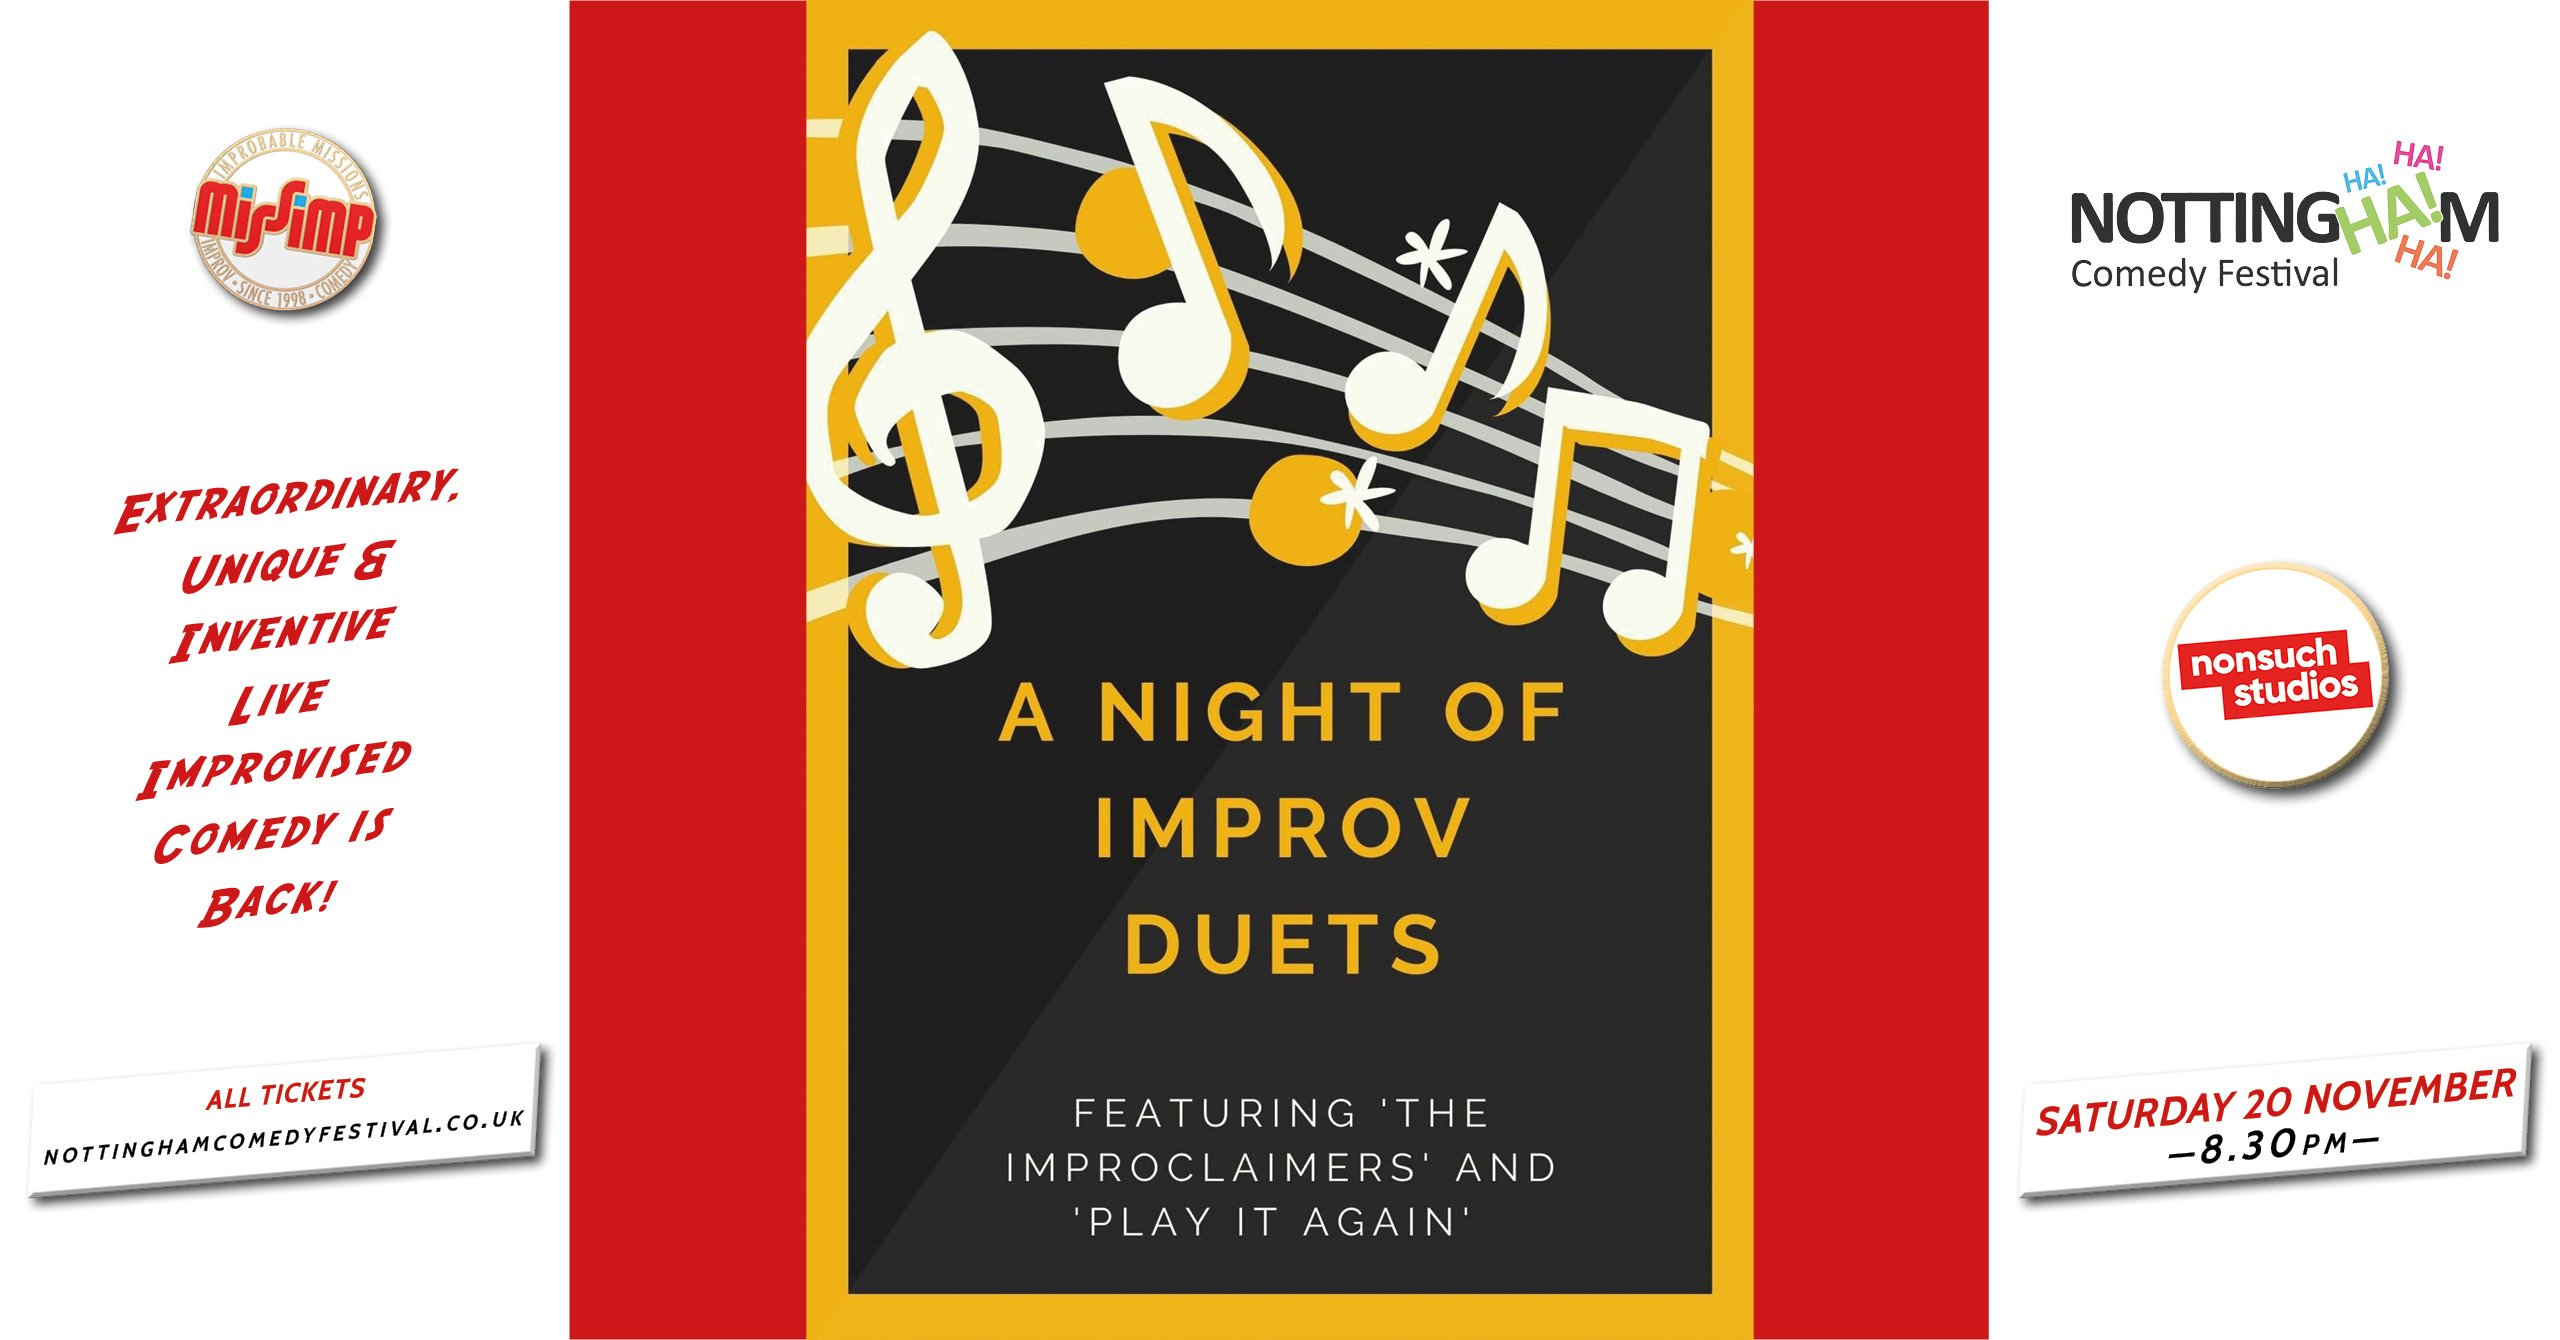 NCF2021 A Night of Improv Duets